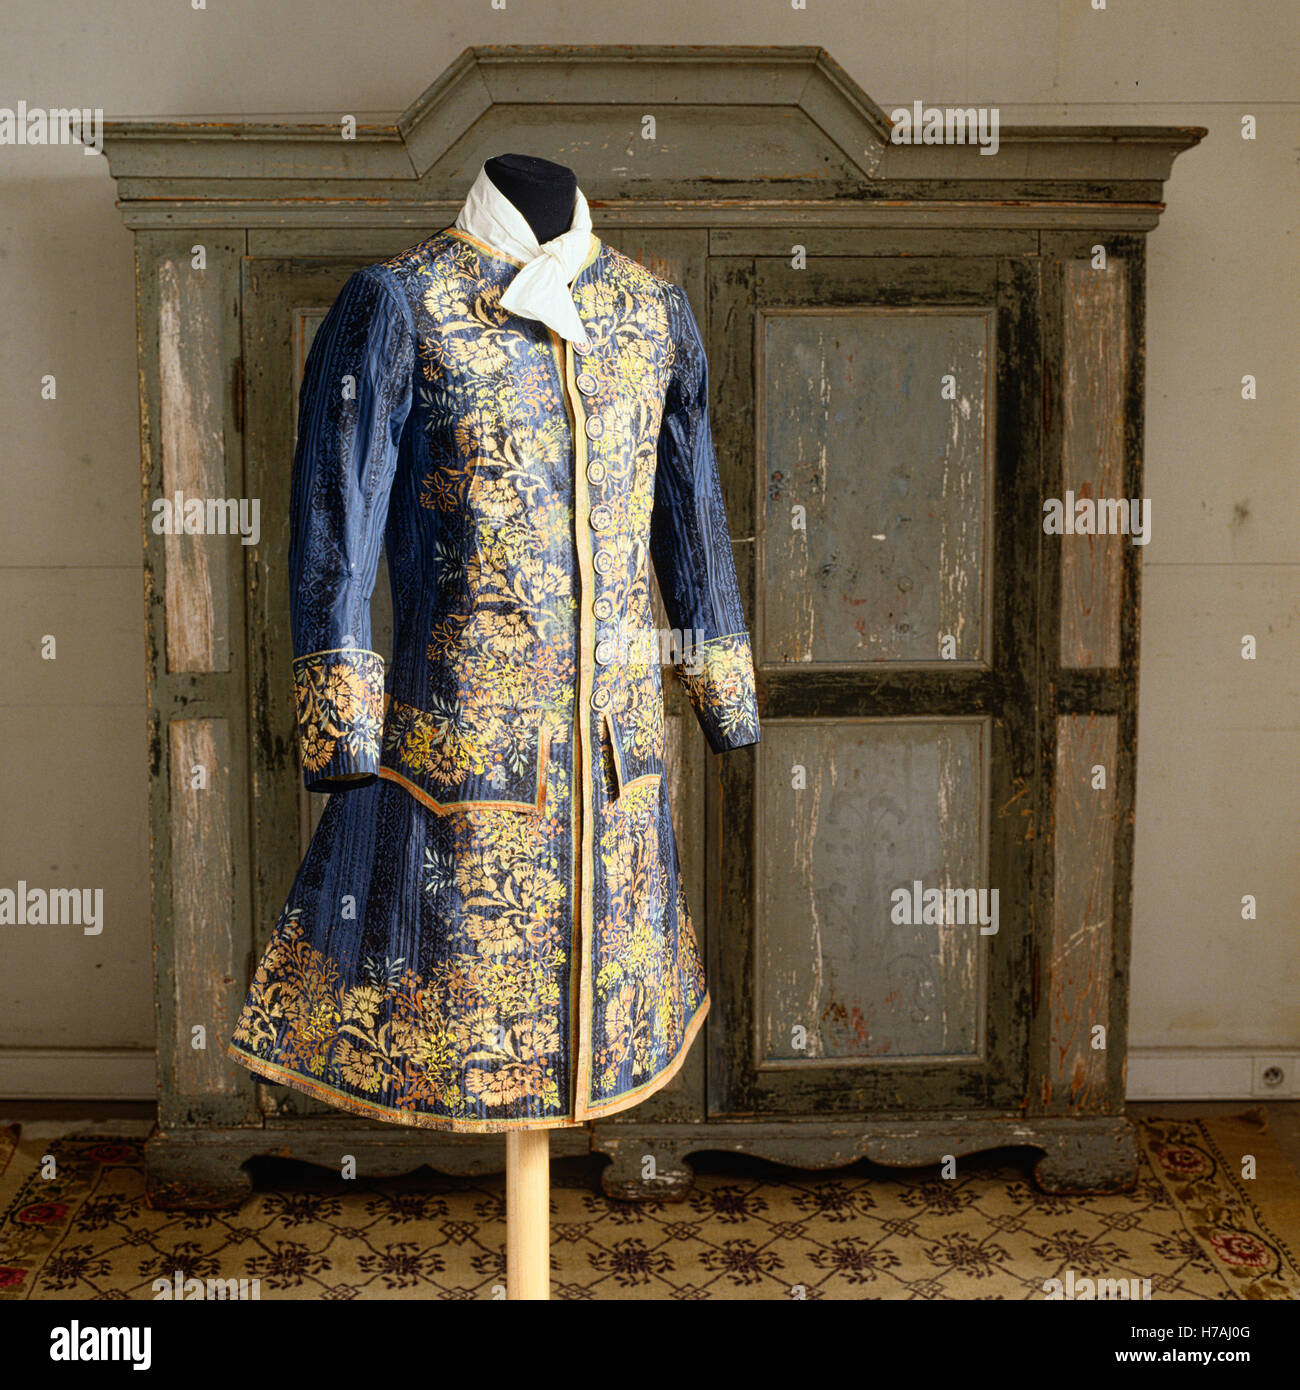 Blue jacket with yellow floral pattern, historical replica made of paper by Isabelle de Borchgrave - Stock Image